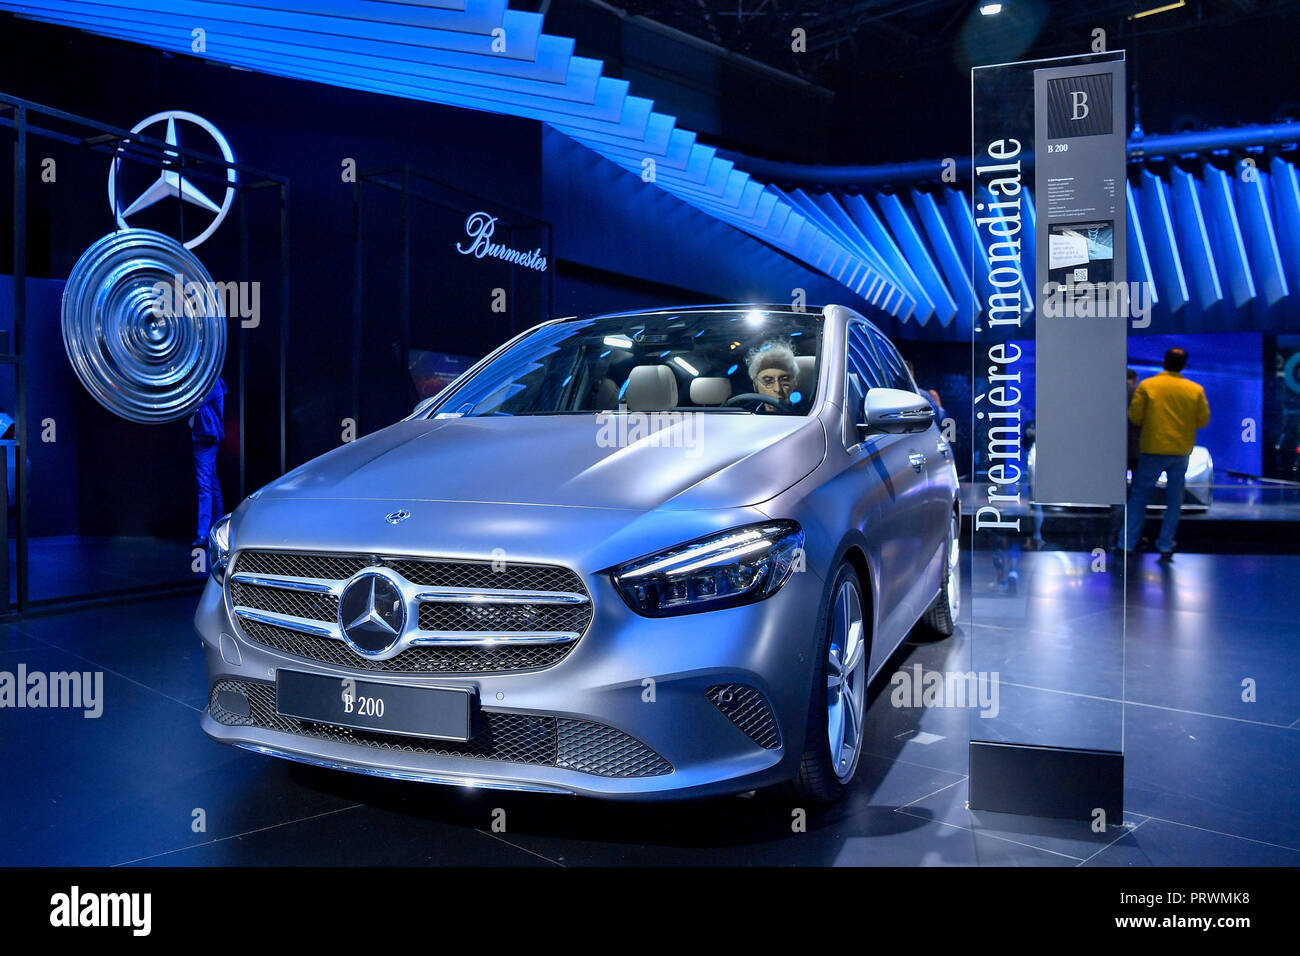 Paris. 3rd Oct, 2018. The newly released Mercedes-Benz's B 200 is seen during the press day of Paris Motor Show in Paris, France on Oct. 3, 2018. Credit: Chen Yichen/Xinhua/Alamy Live News - Stock Image